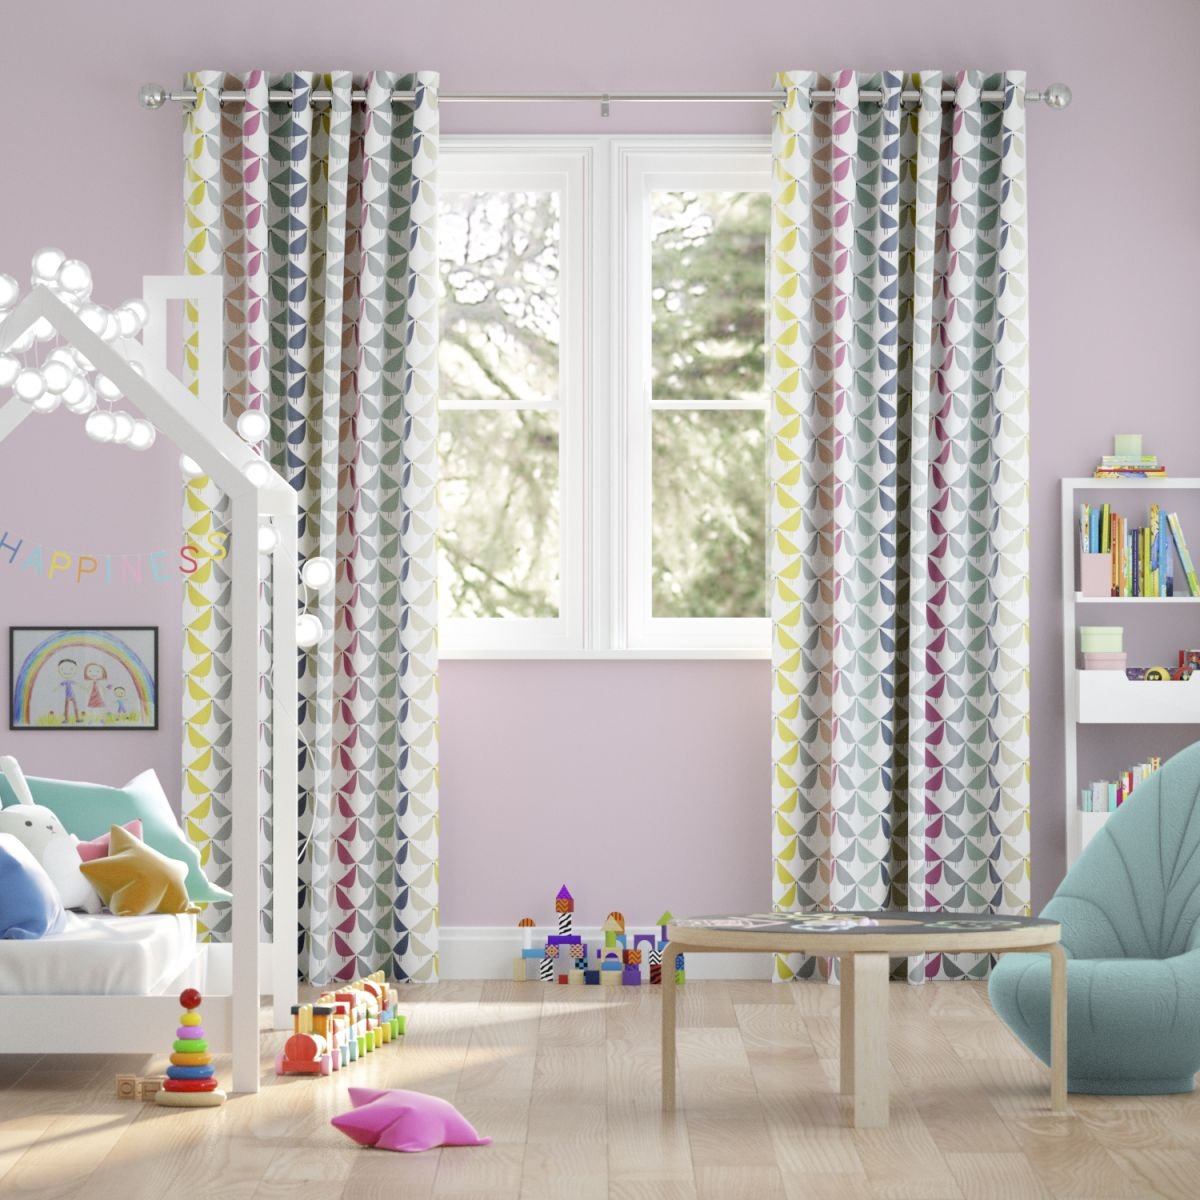 Window treatments for children's bedrooms: 11 wonderful ...